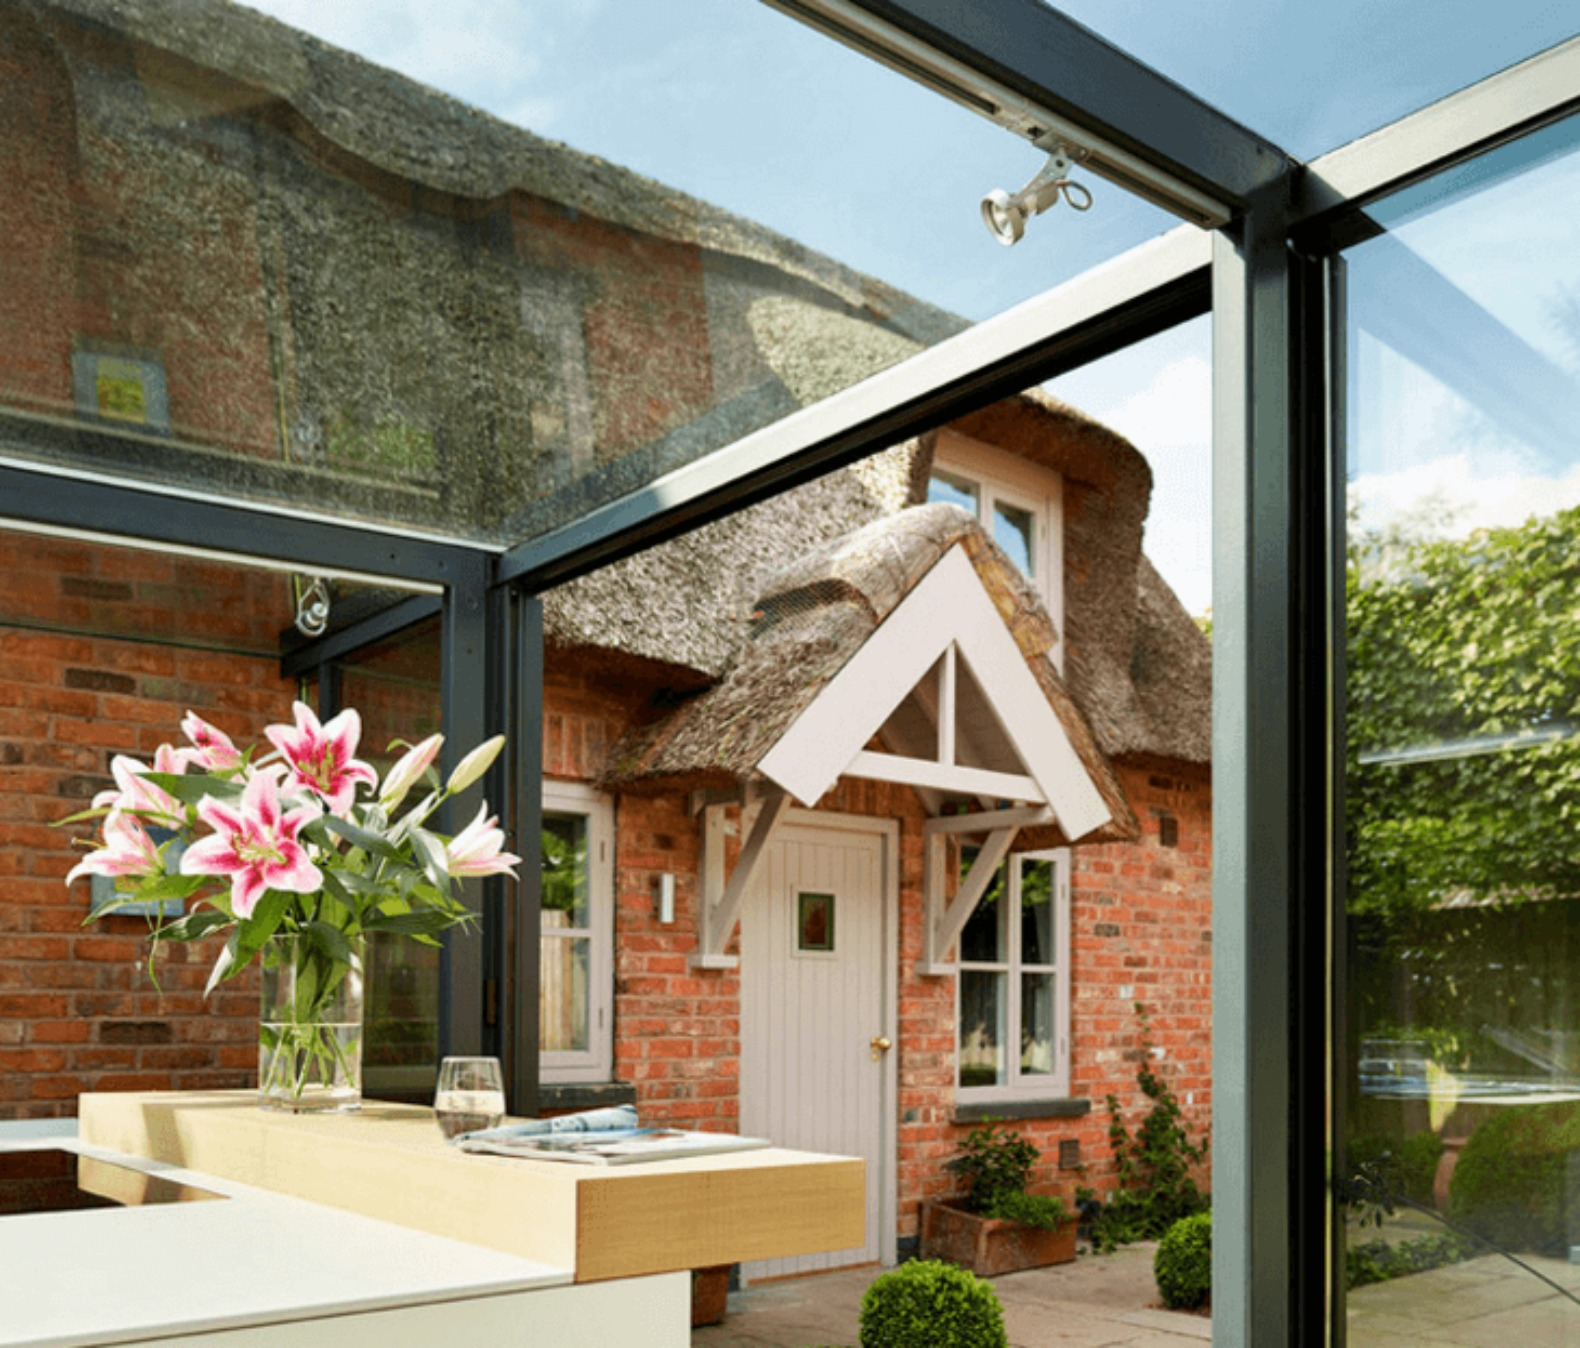 18th century english cottage renovated with breathtaking glass